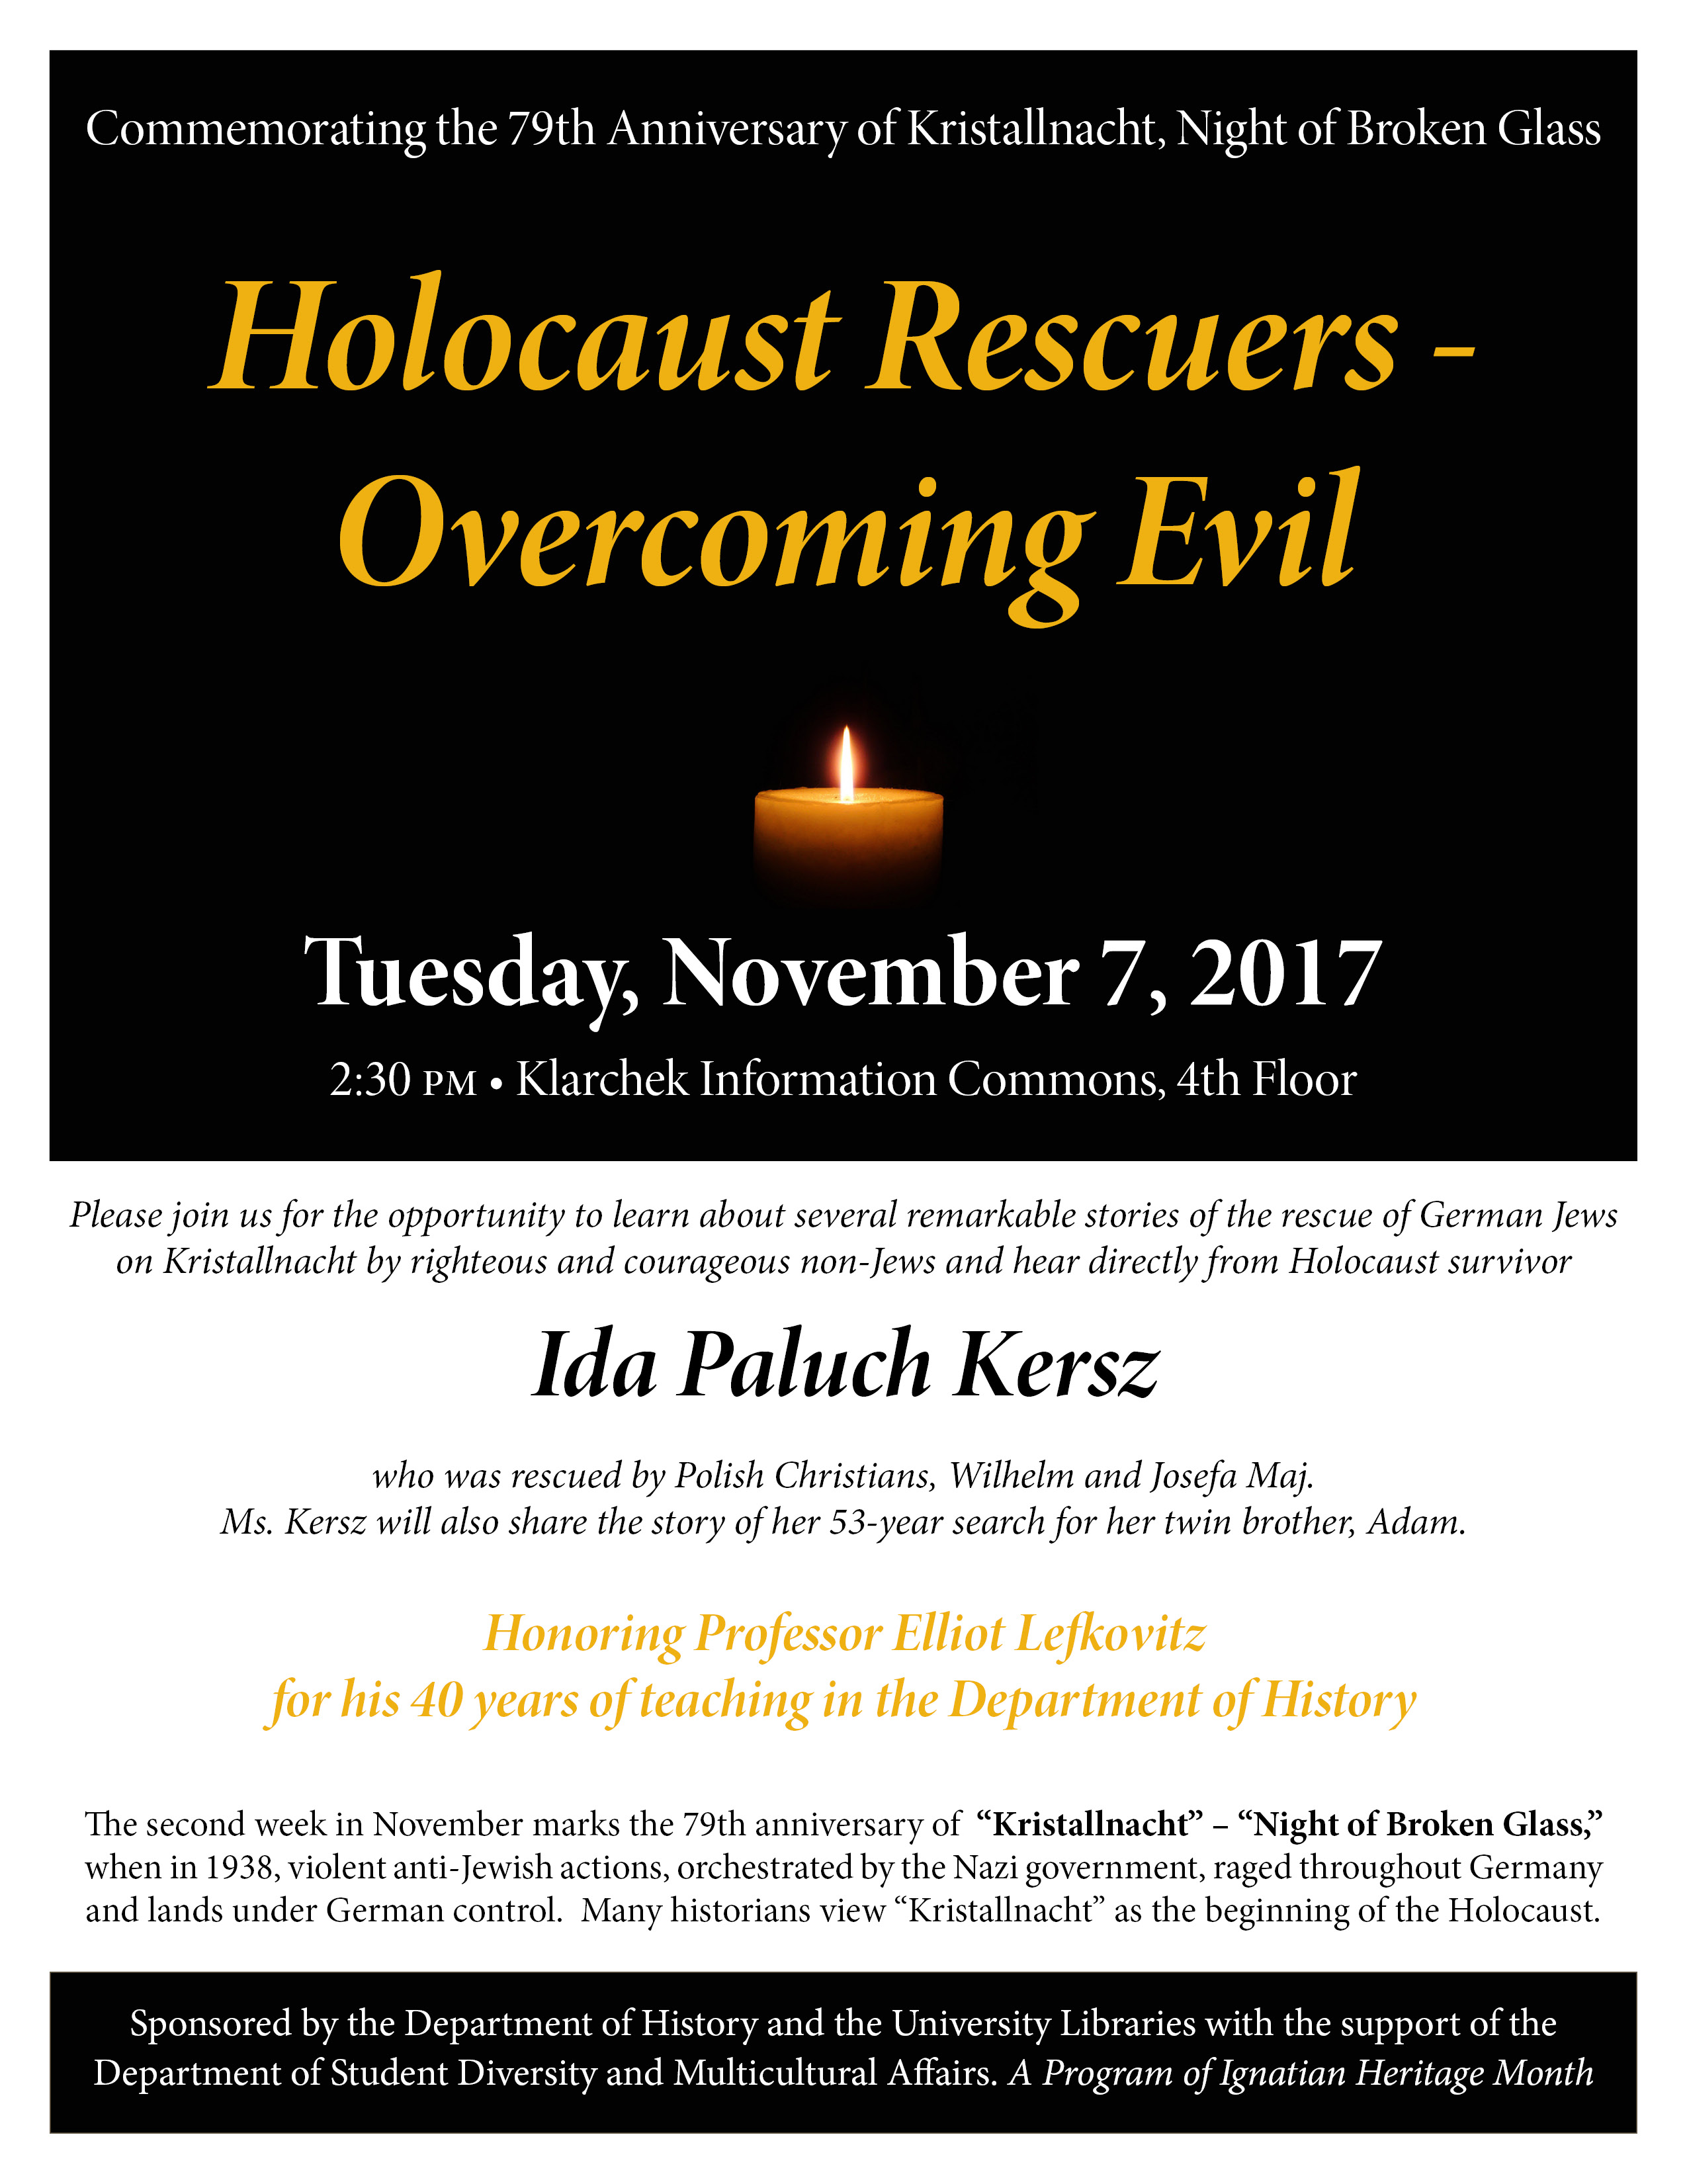 Holocaust Rescuers - Overcoming Evil